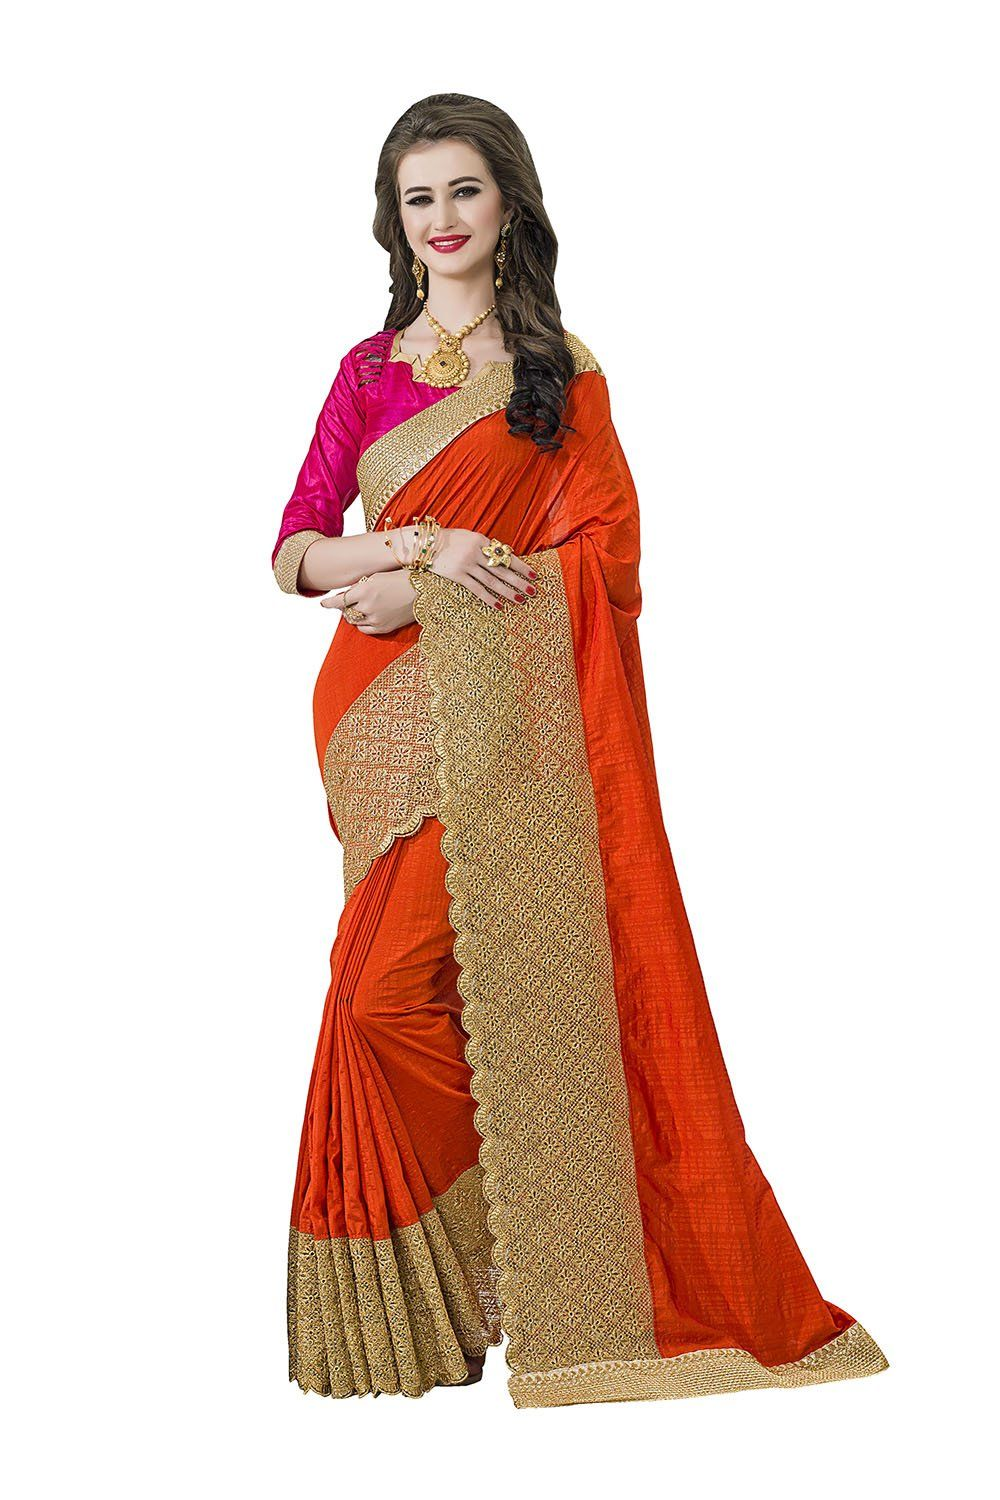 Saree for freshers party in college fashions trendz indian women designer party wear multicolor color